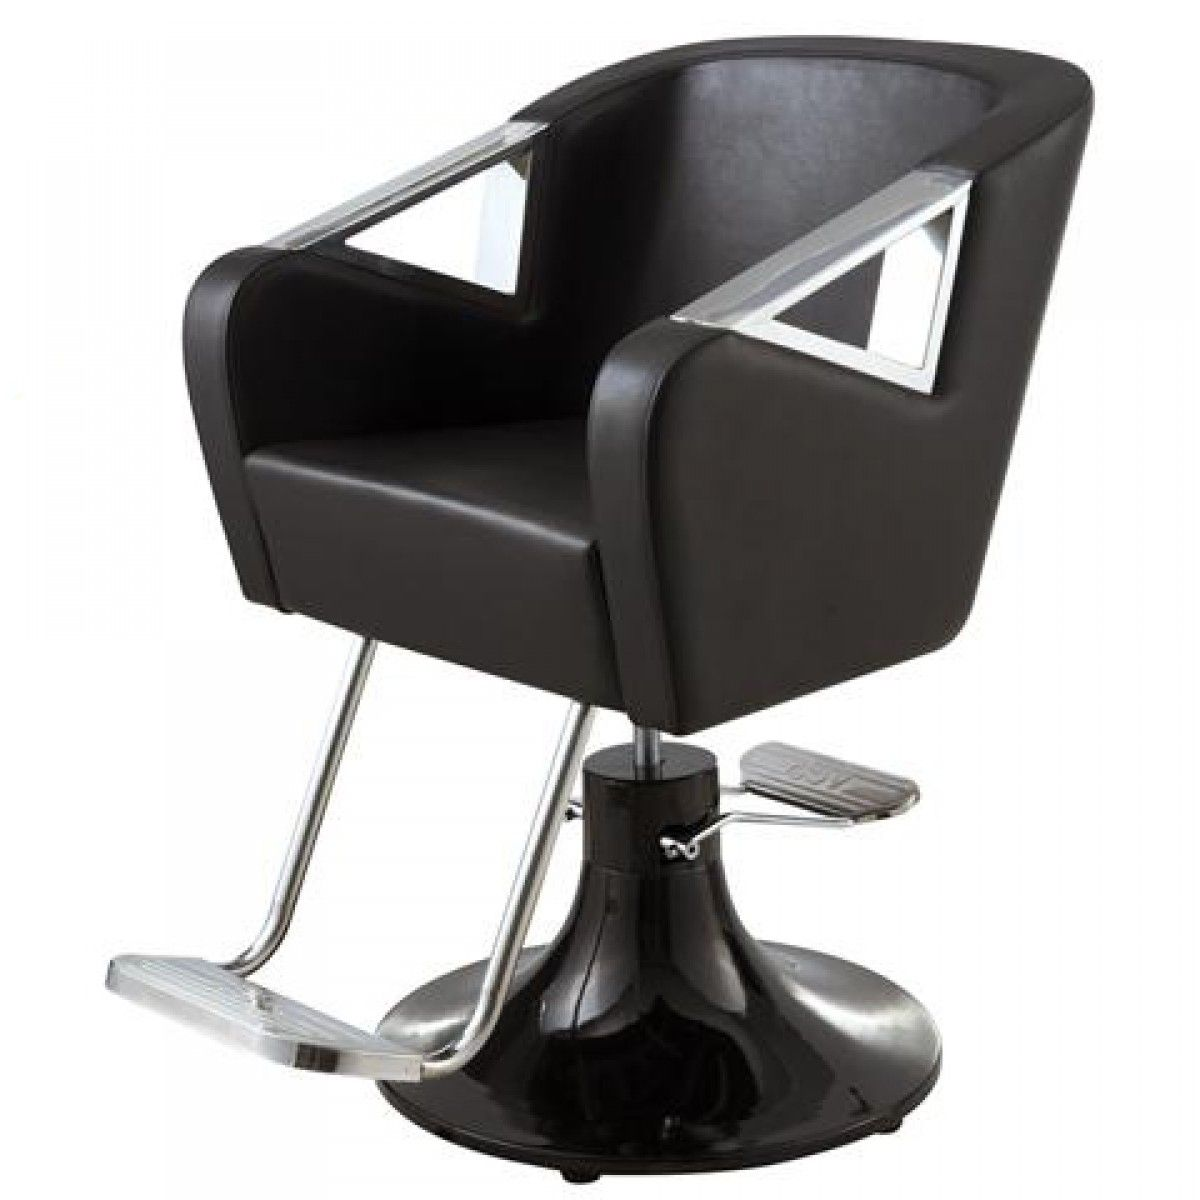 salon chairs for sale lift chair covers walmart savoy luxurious styling by agsbeauty